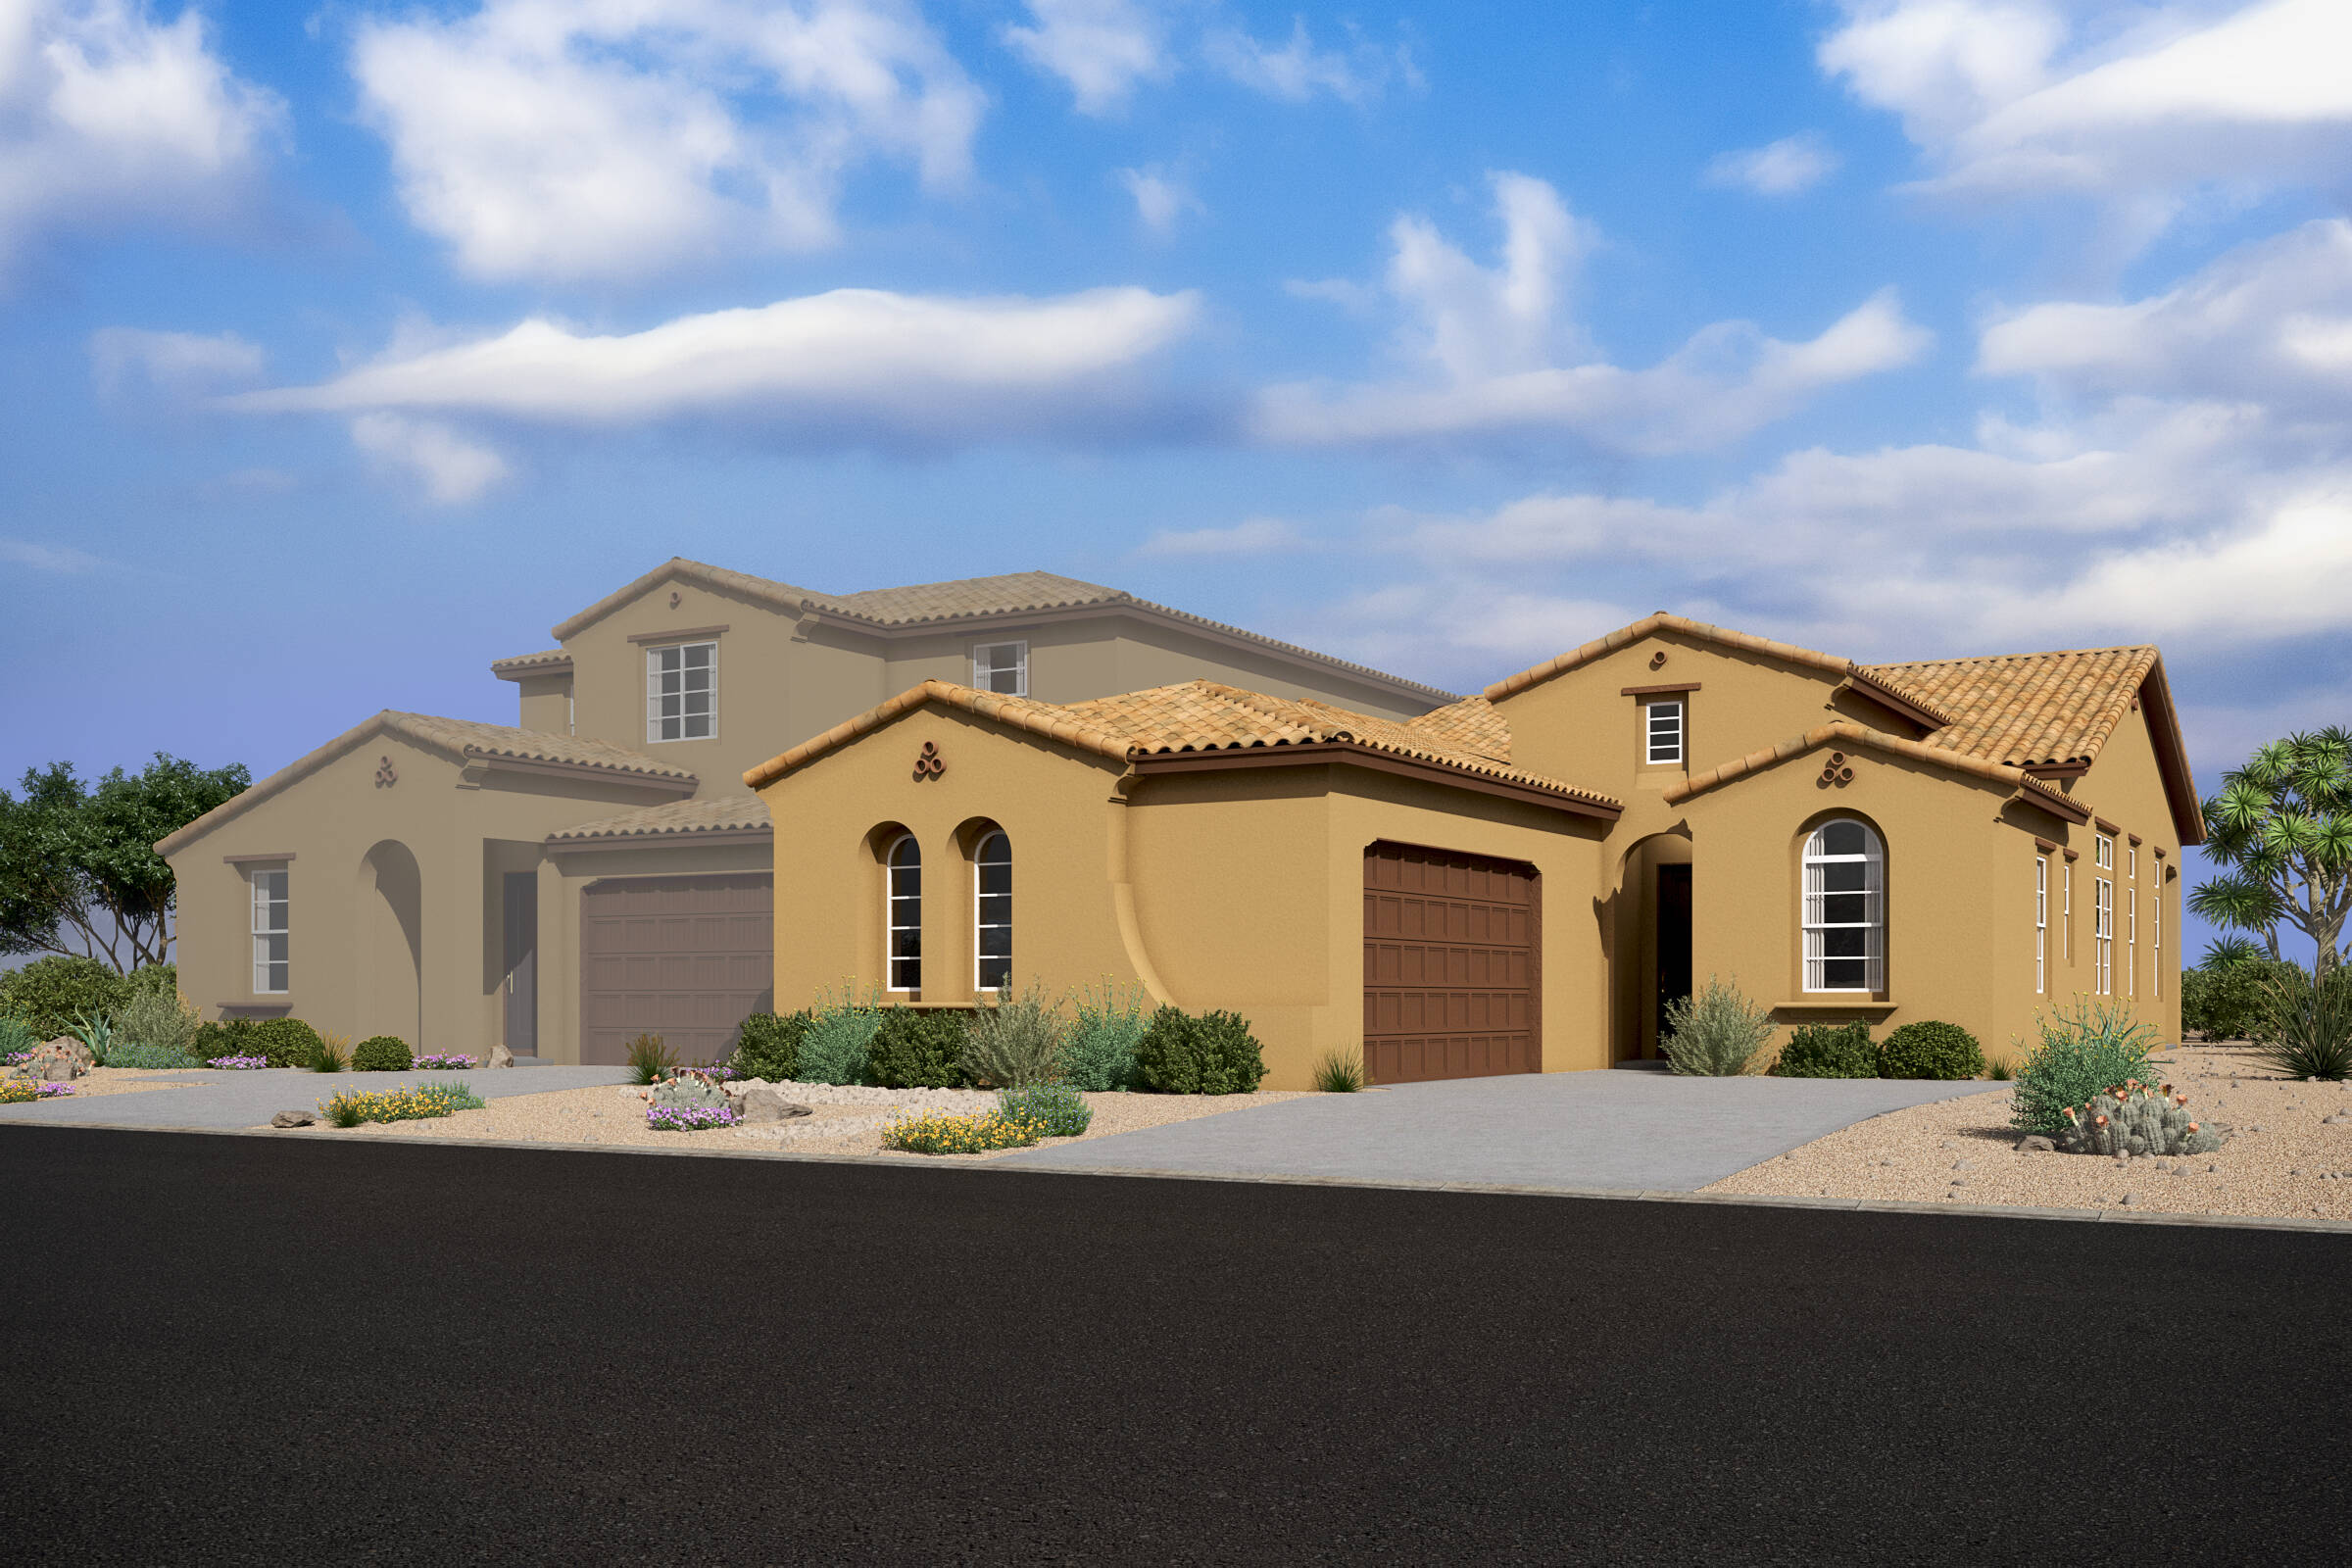 ascent spanish colonial d new homes silverstone with meridian